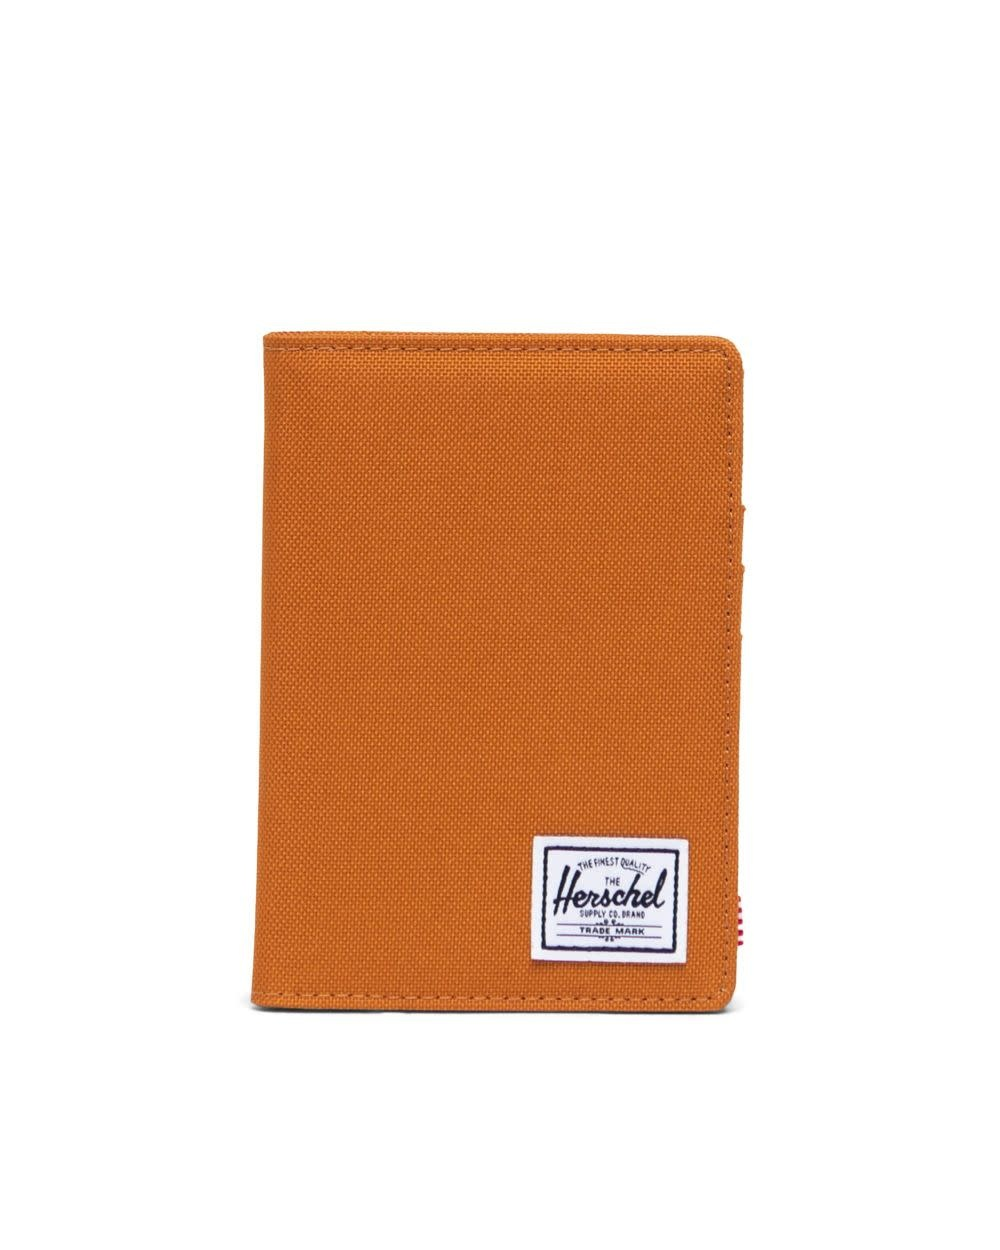 Herschel Herschel Raynor Passport Holder